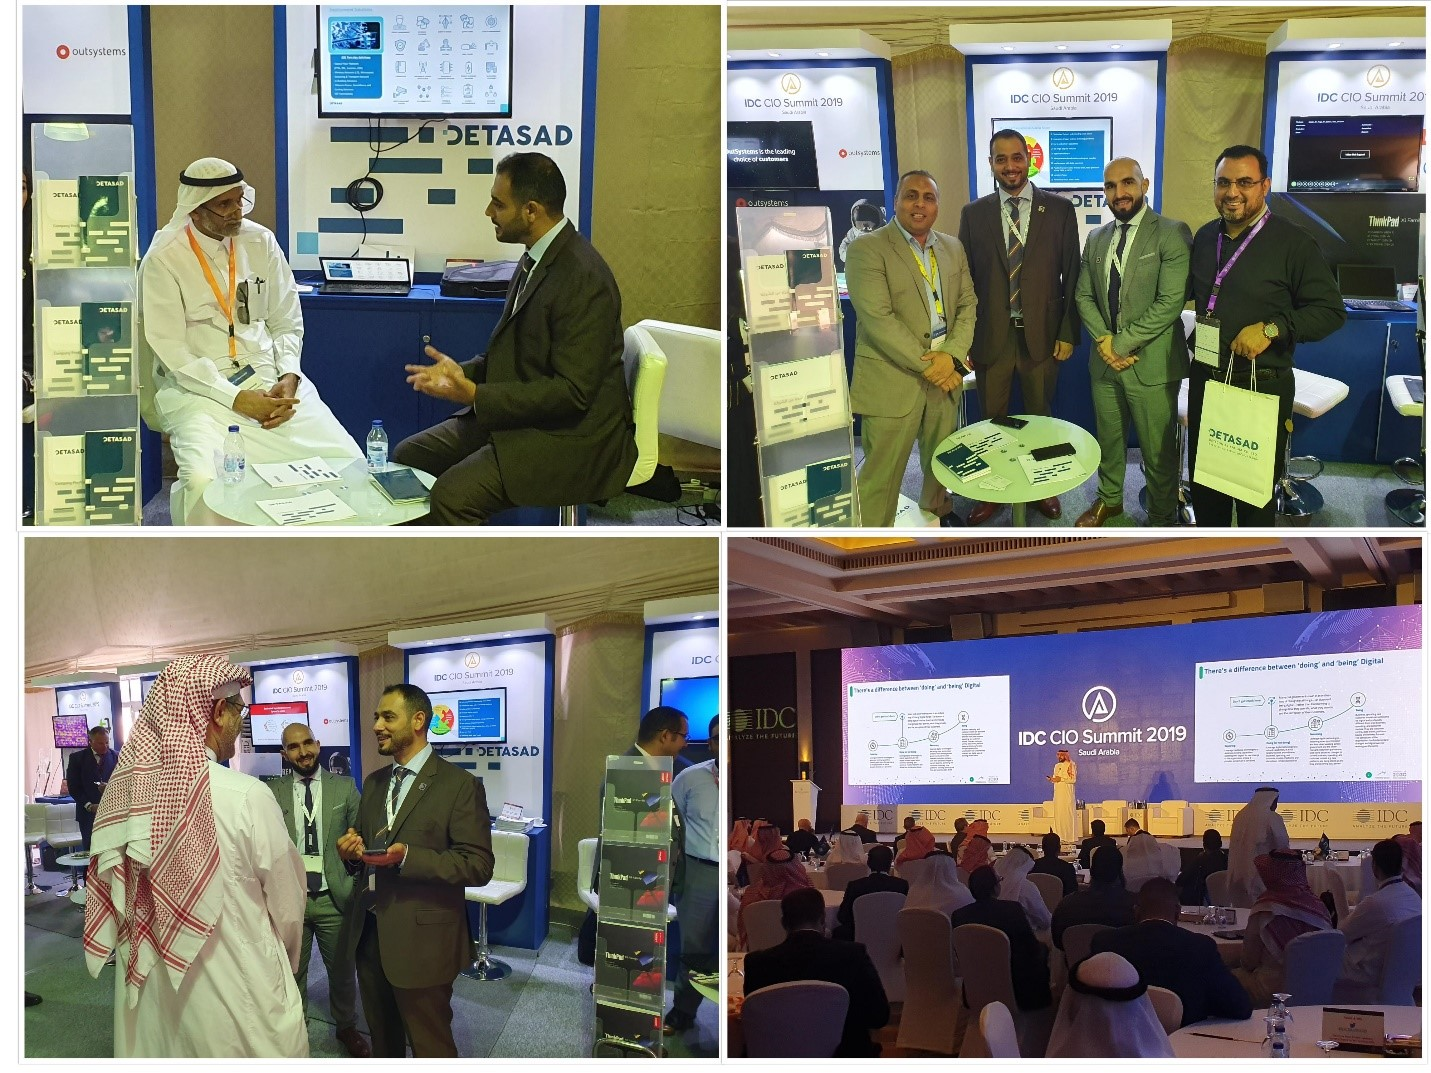 DETASAD SPONSORED THE IDC CIO SUMMIT 2019 in Jeddah